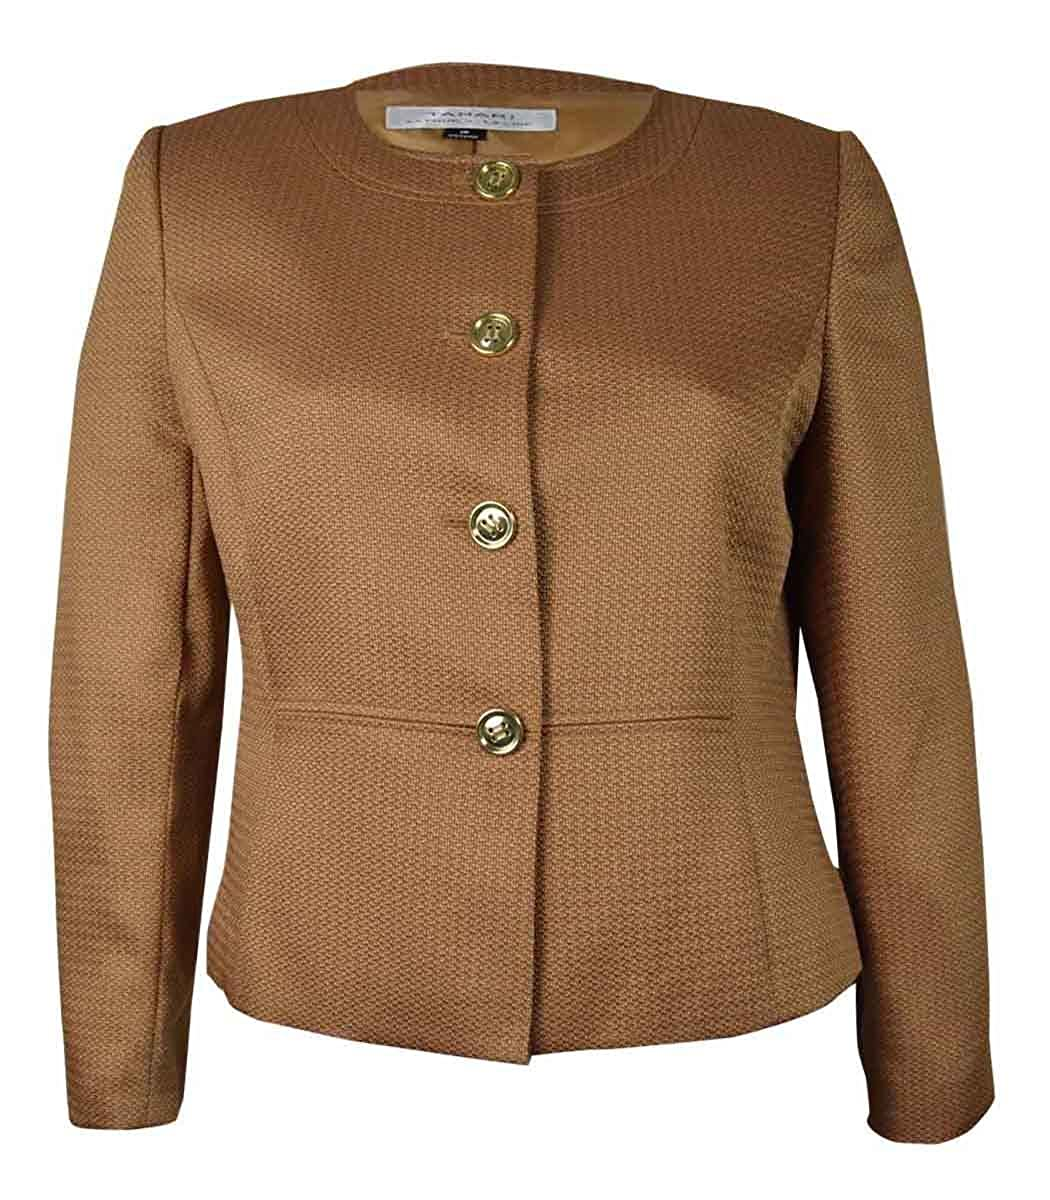 Tahari Women's Woven Vincent Jacket Toast) 00_ZQEWDQ7O_SD